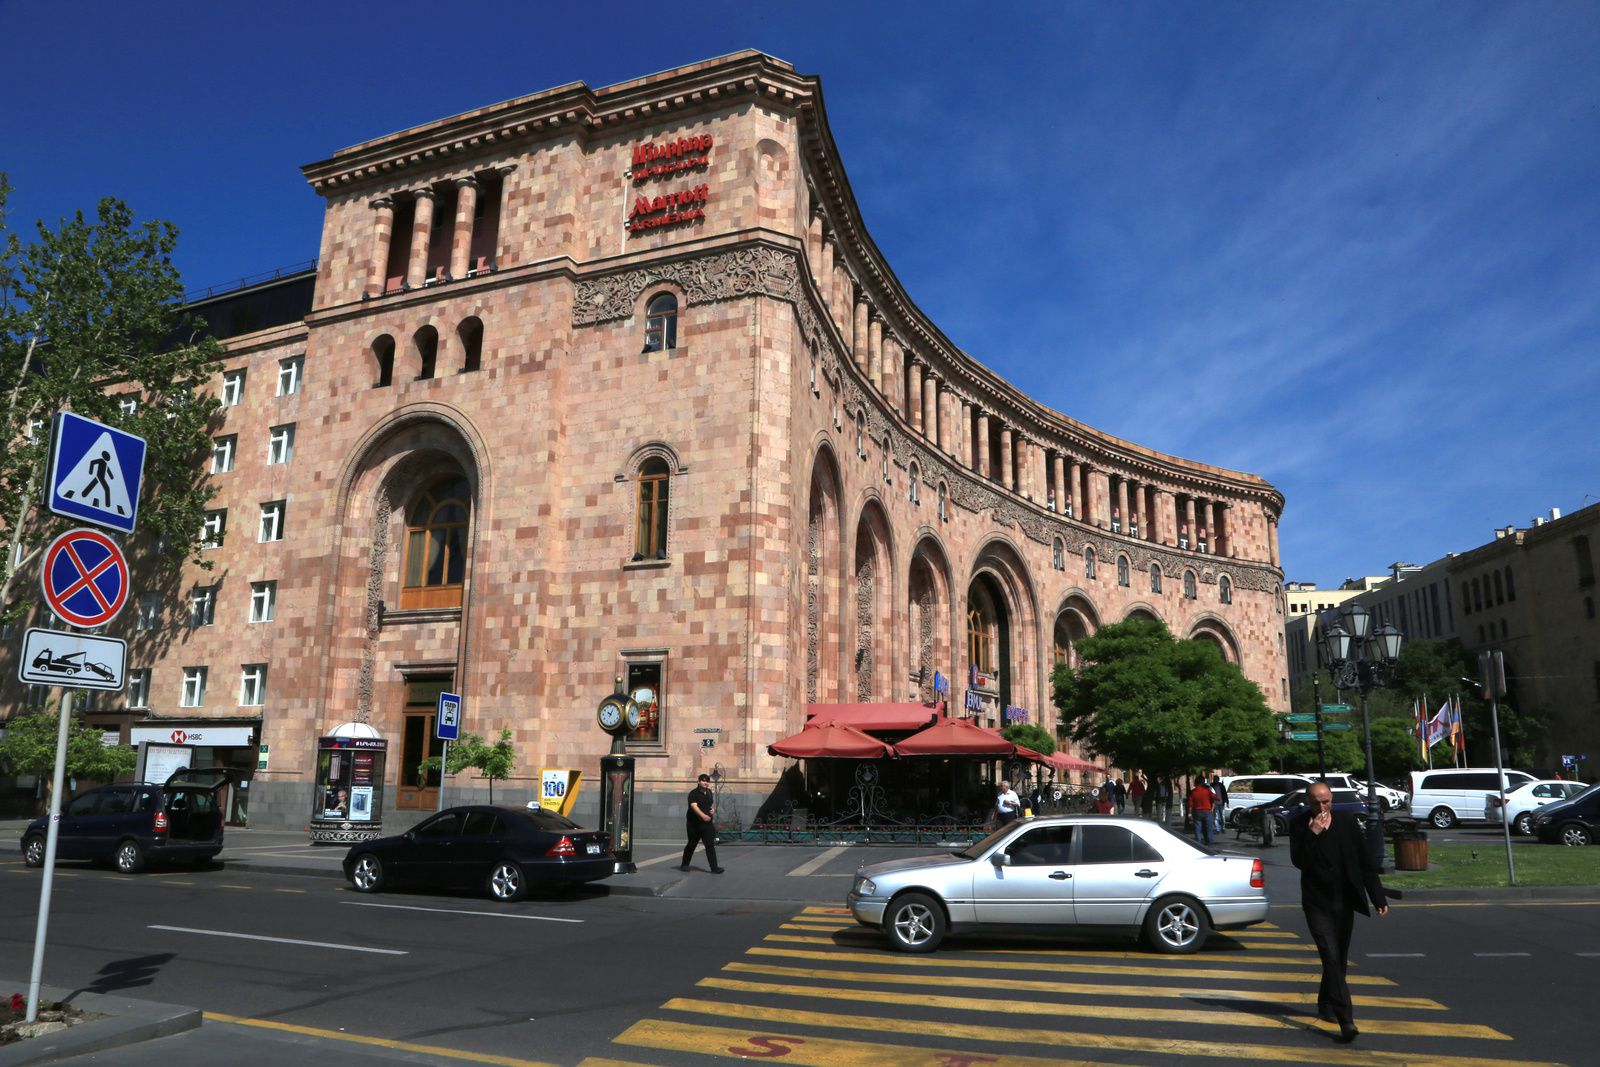 Yerevan - shade of volcanic tuffs on the buildings of the Republic Square - photo © Bernard Duyck 2019